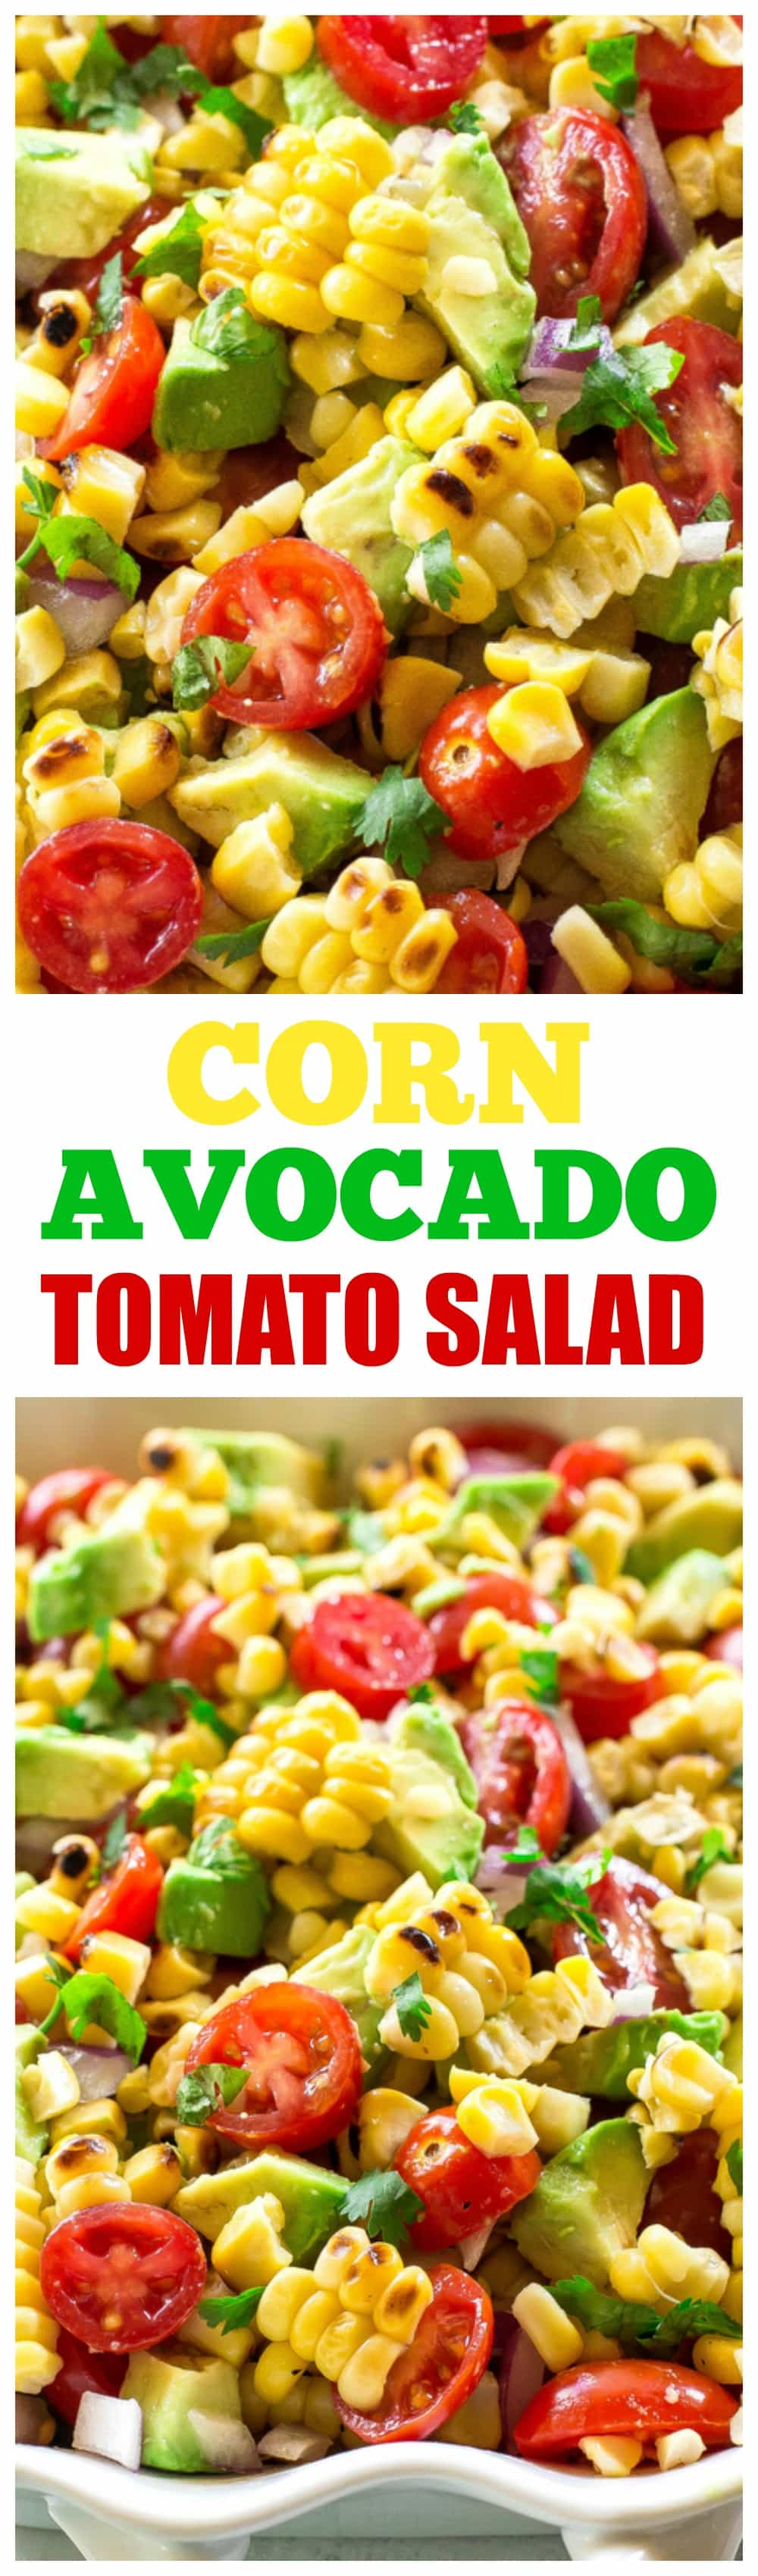 This Corn, Avocado, and Tomato Salad is a fresh and light side dish perfect for summer BBQs and potlucks. It's a fresh and light side dish that screams summer! #summer #potluck #sidedish #salad #corn #BBQ